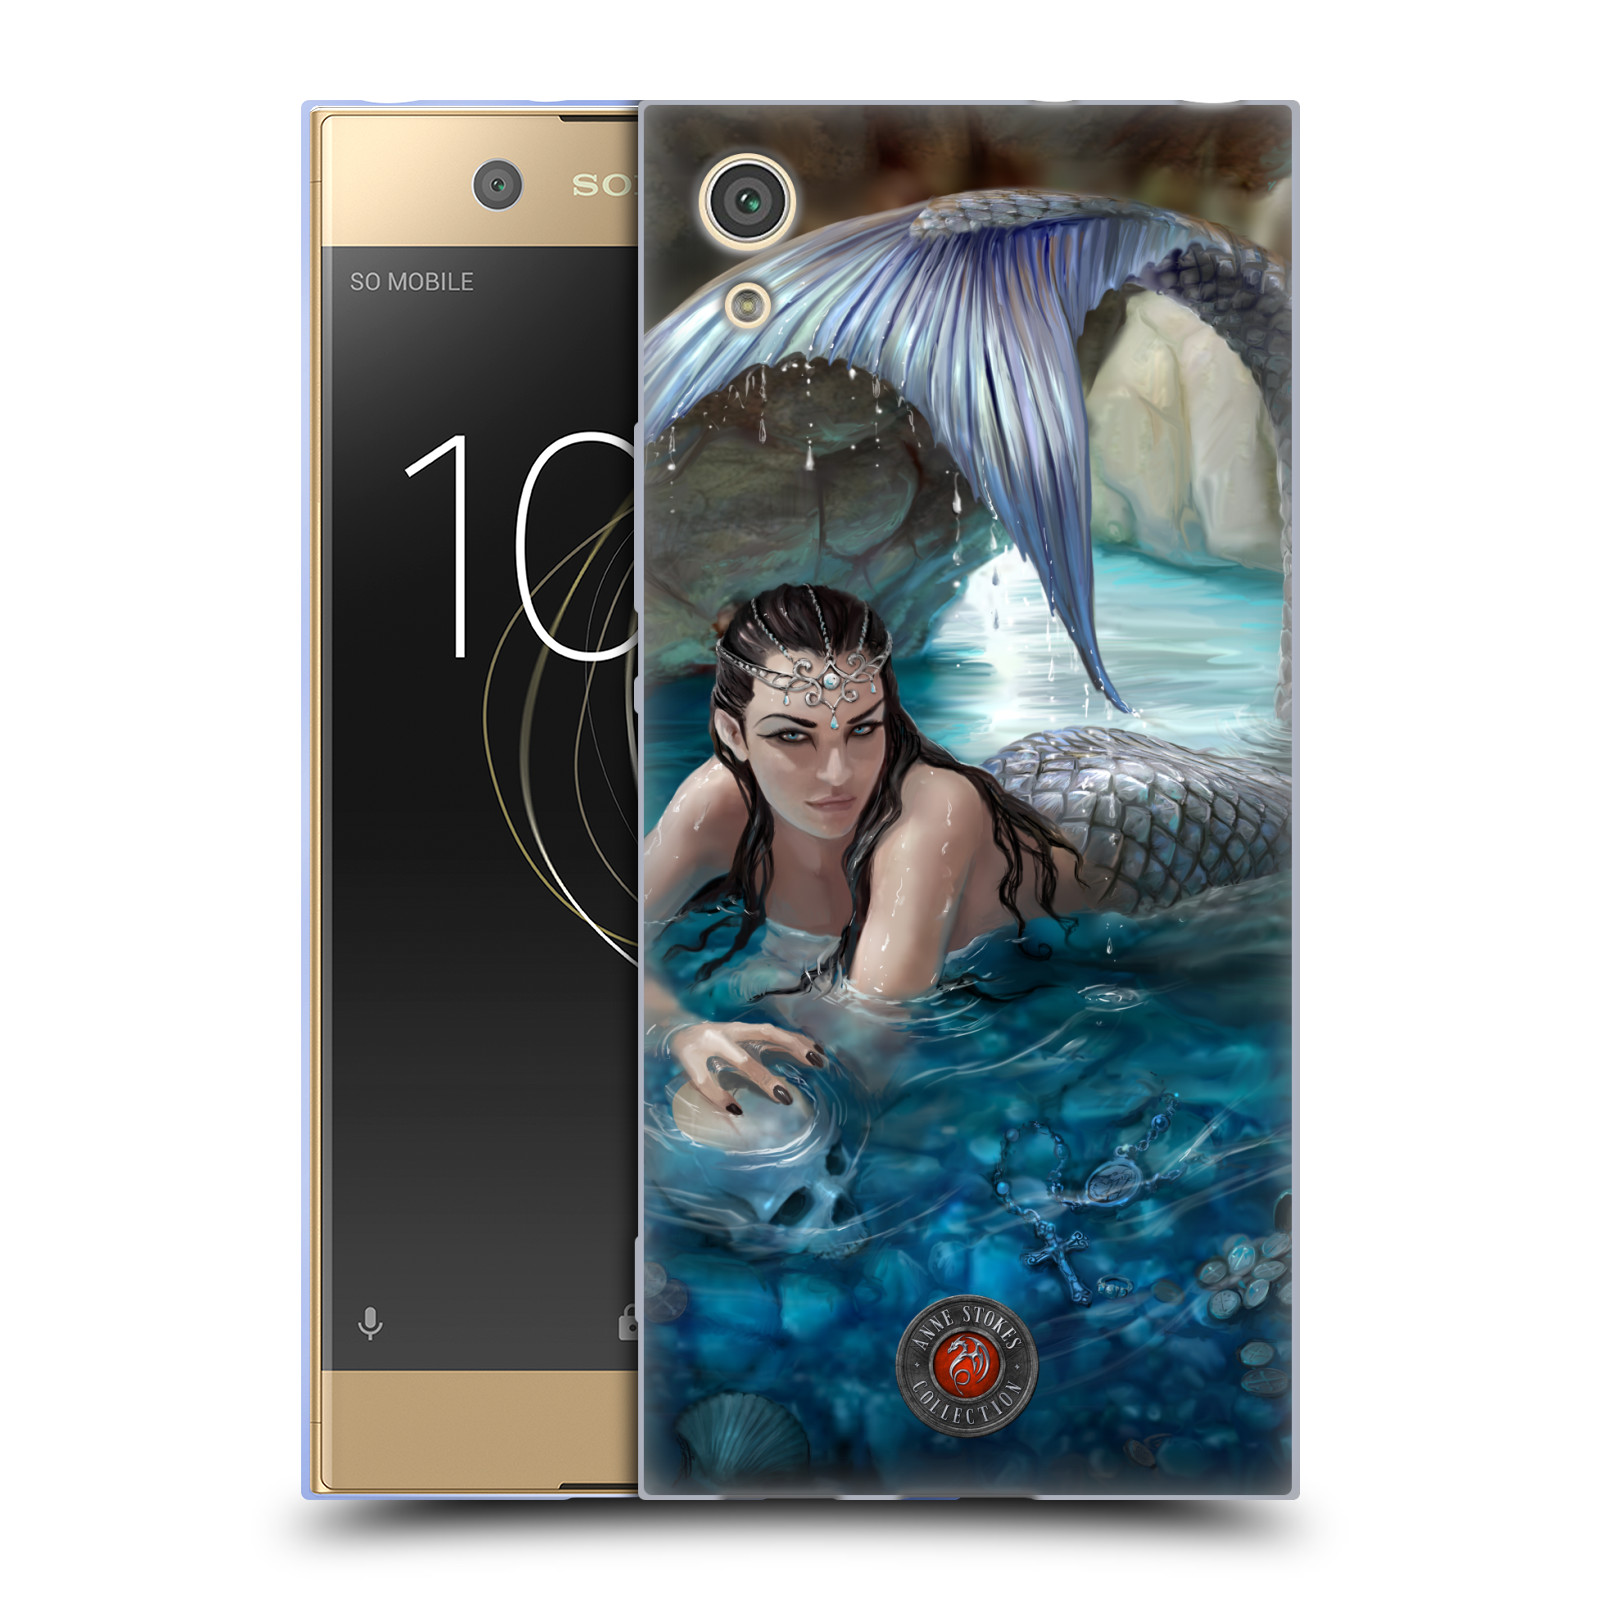 OFFICIAL-ANNE-STOKES-MERMAID-AND-ANGELS-SOFT-GEL-CASE-FOR-SONY-PHONES-1